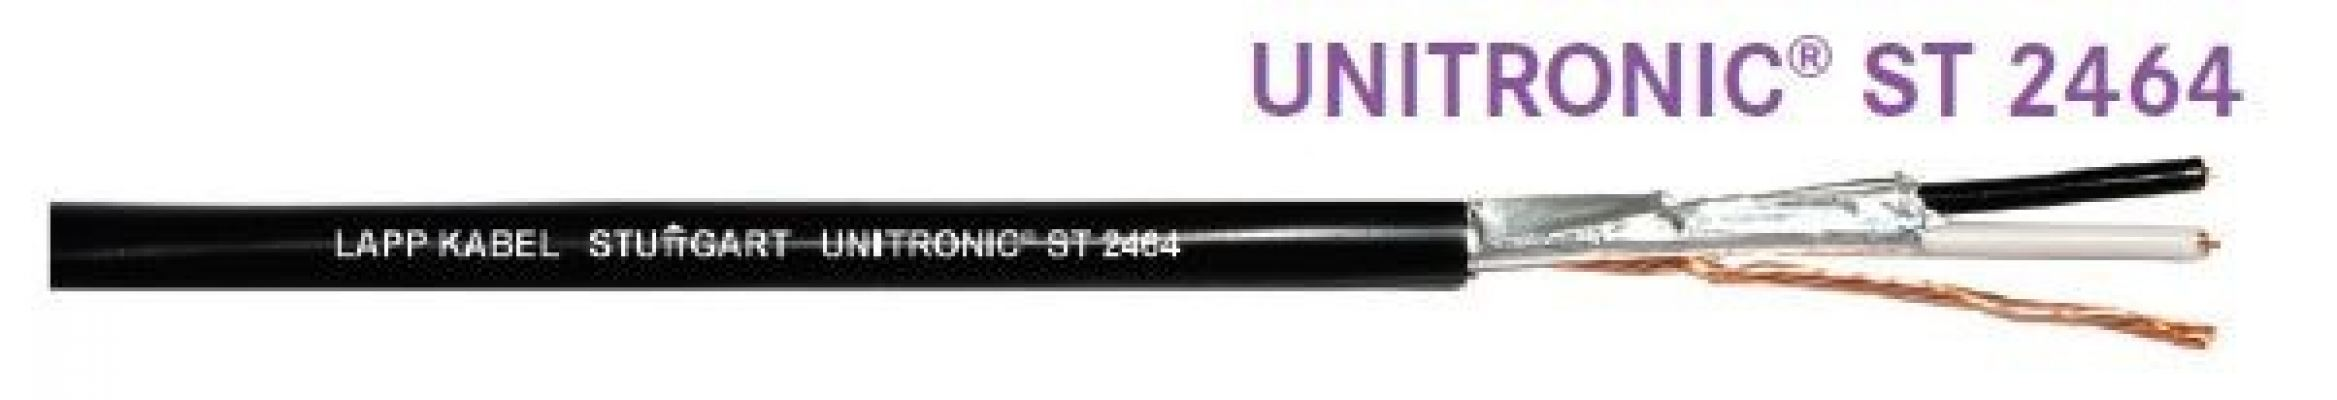 LAPP KABEL Low Frequency Data Transmission Cable UNITRONIC ST 2464